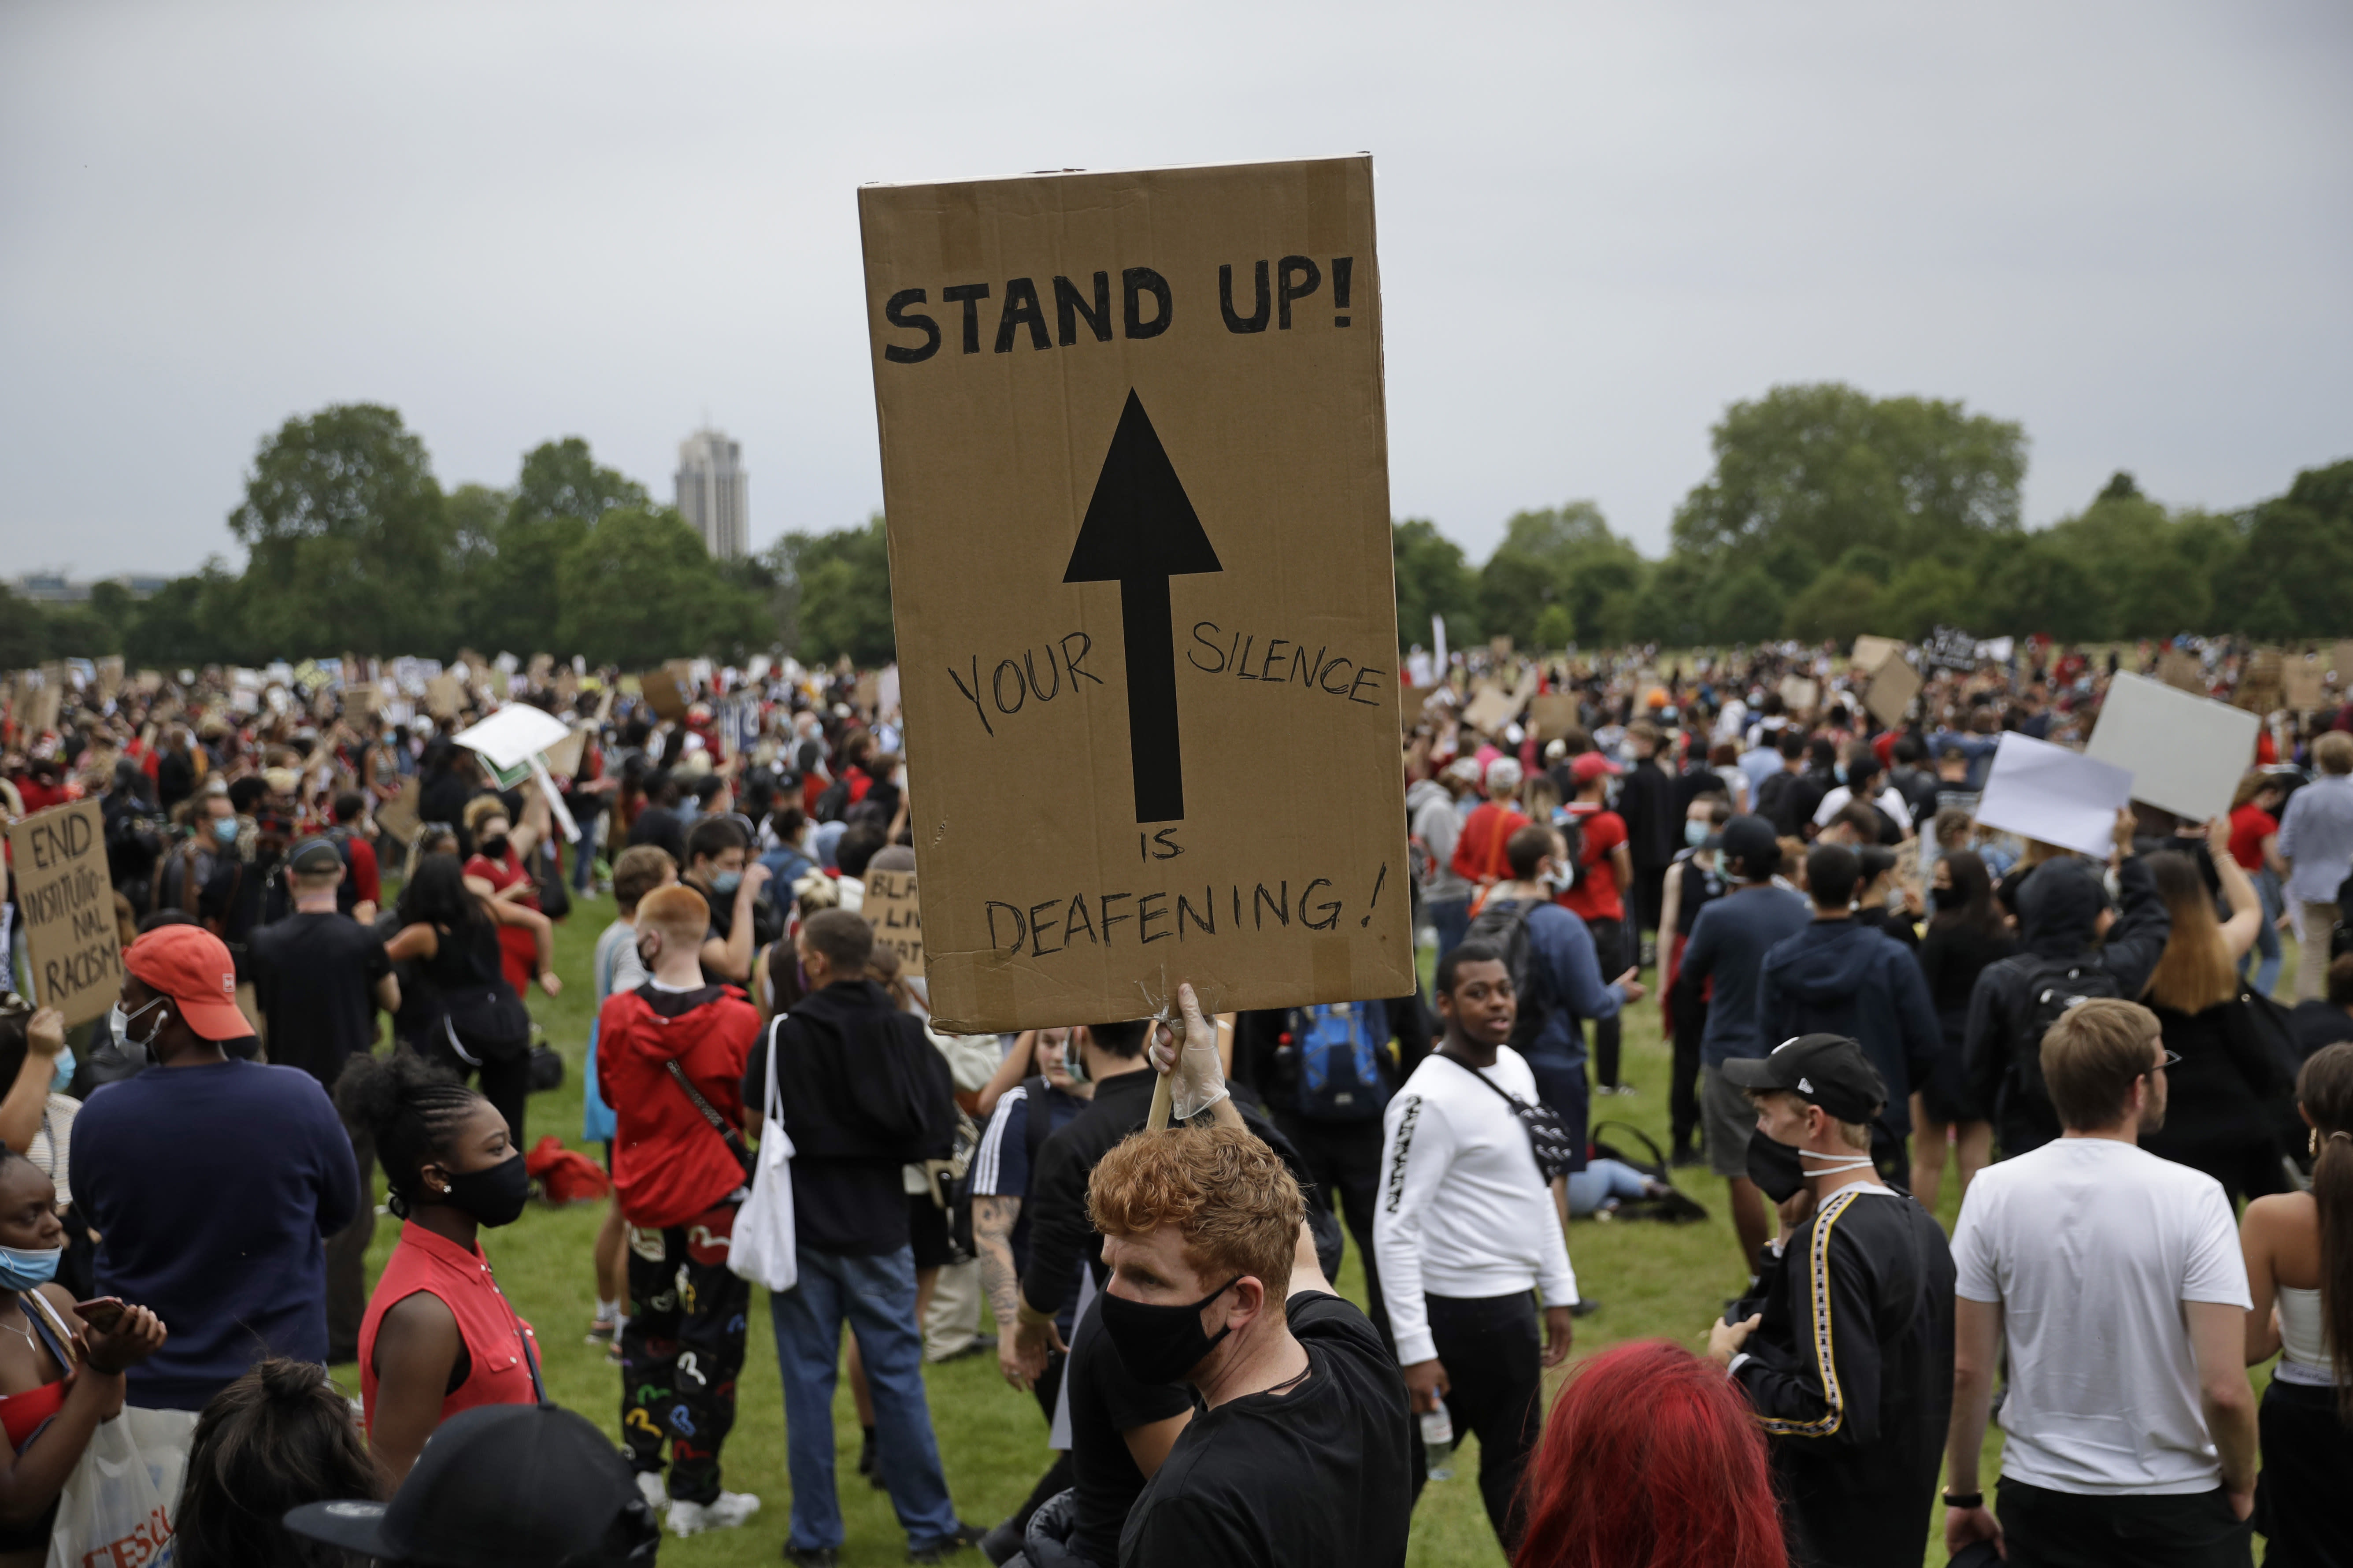 Protesters take part in a demonstration on Wednesday, June 3, 2020, in Hyde Park, London, over the death of George Floyd, a black man who died after being restrained by Minneapolis police officers on May 25. Protests have taken place across America and internationally, after a white Minneapolis police officer pressed his knee against Floyd's neck while the handcuffed black man called out that he couldn't breathe. The officer, Derek Chauvin, has been fired and charged with murder. (AP Photo/Matt Dunham)